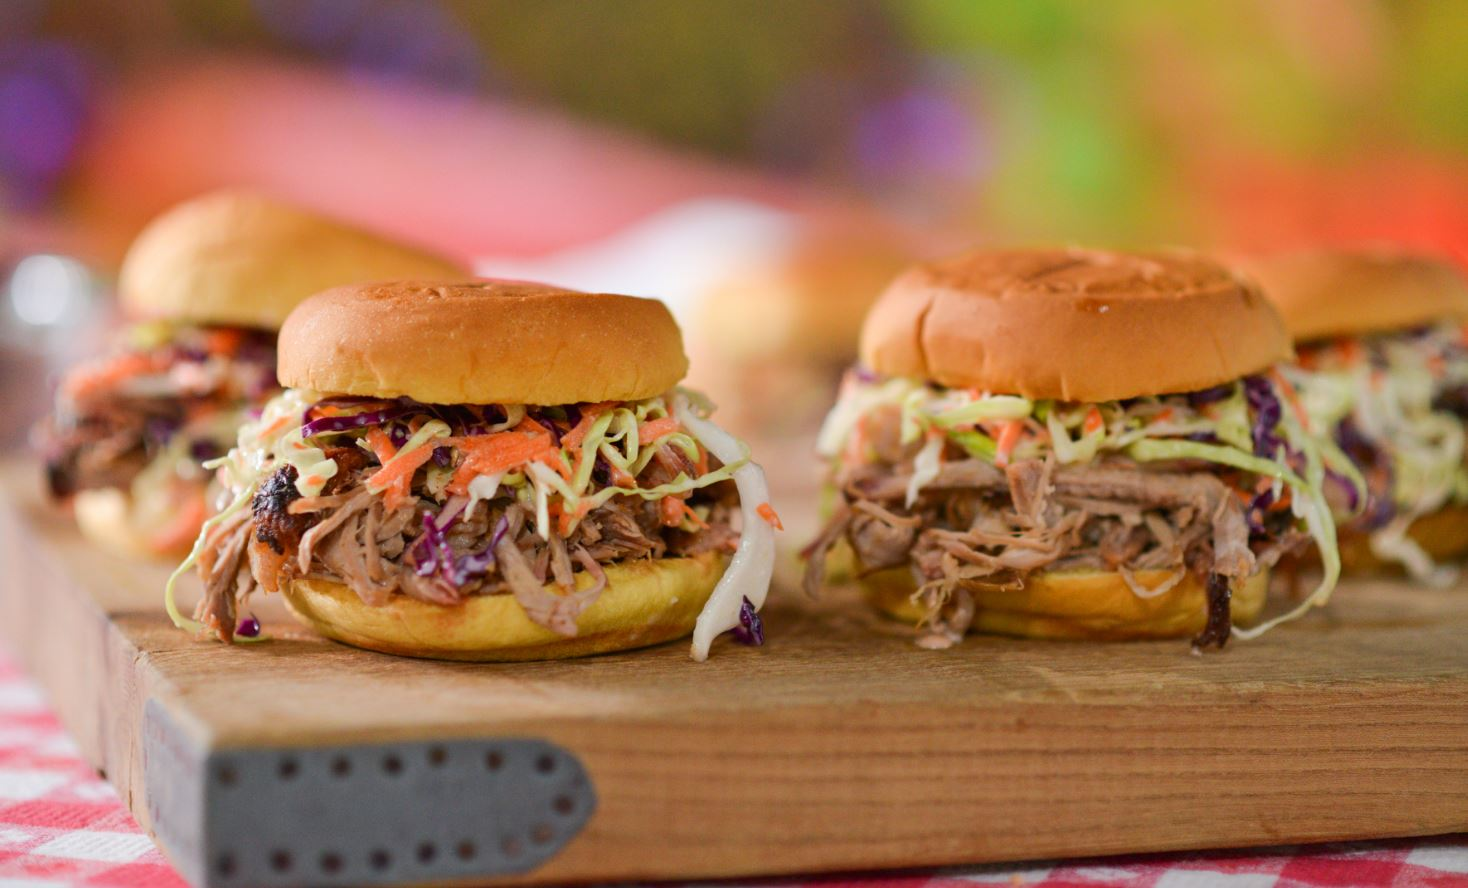 Homemade Pulled Pork Sandwich with Coleslaw and BBQ Sauce - TODAY.com